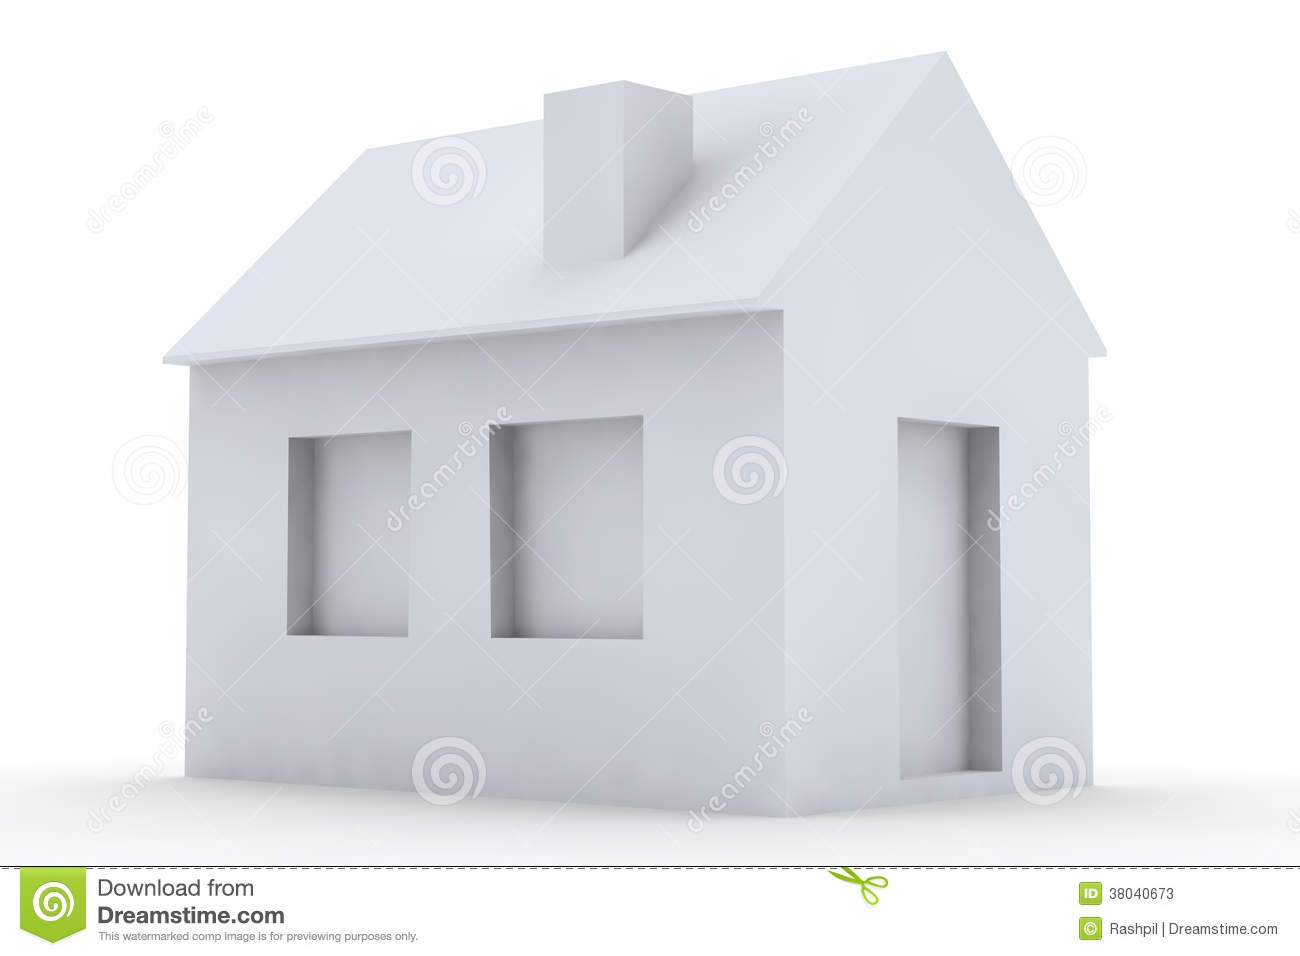 Simple 3d house stock photos image 38040673 for Minimalist house 3d